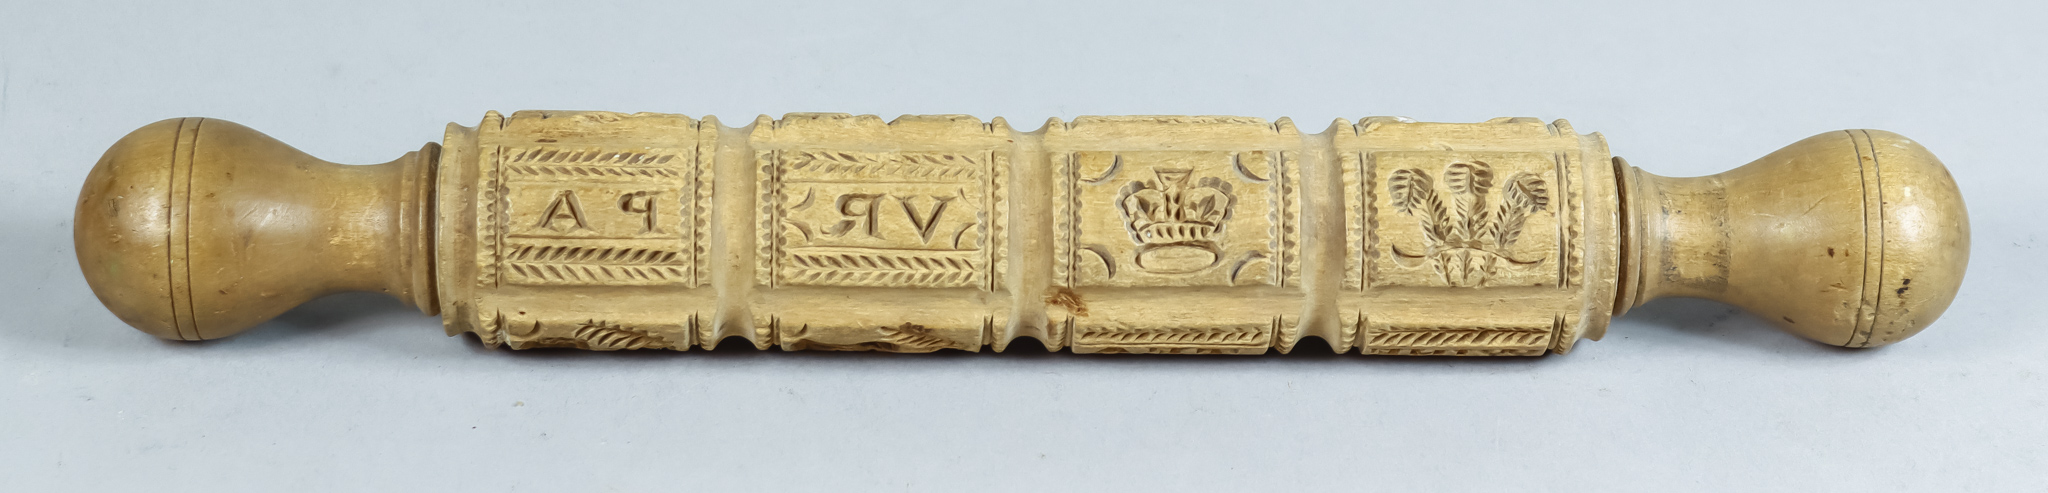 A Carved Wood Roller, Victorian, carved with motifs including - Prince of Wales feathers, crown, - Image 2 of 2